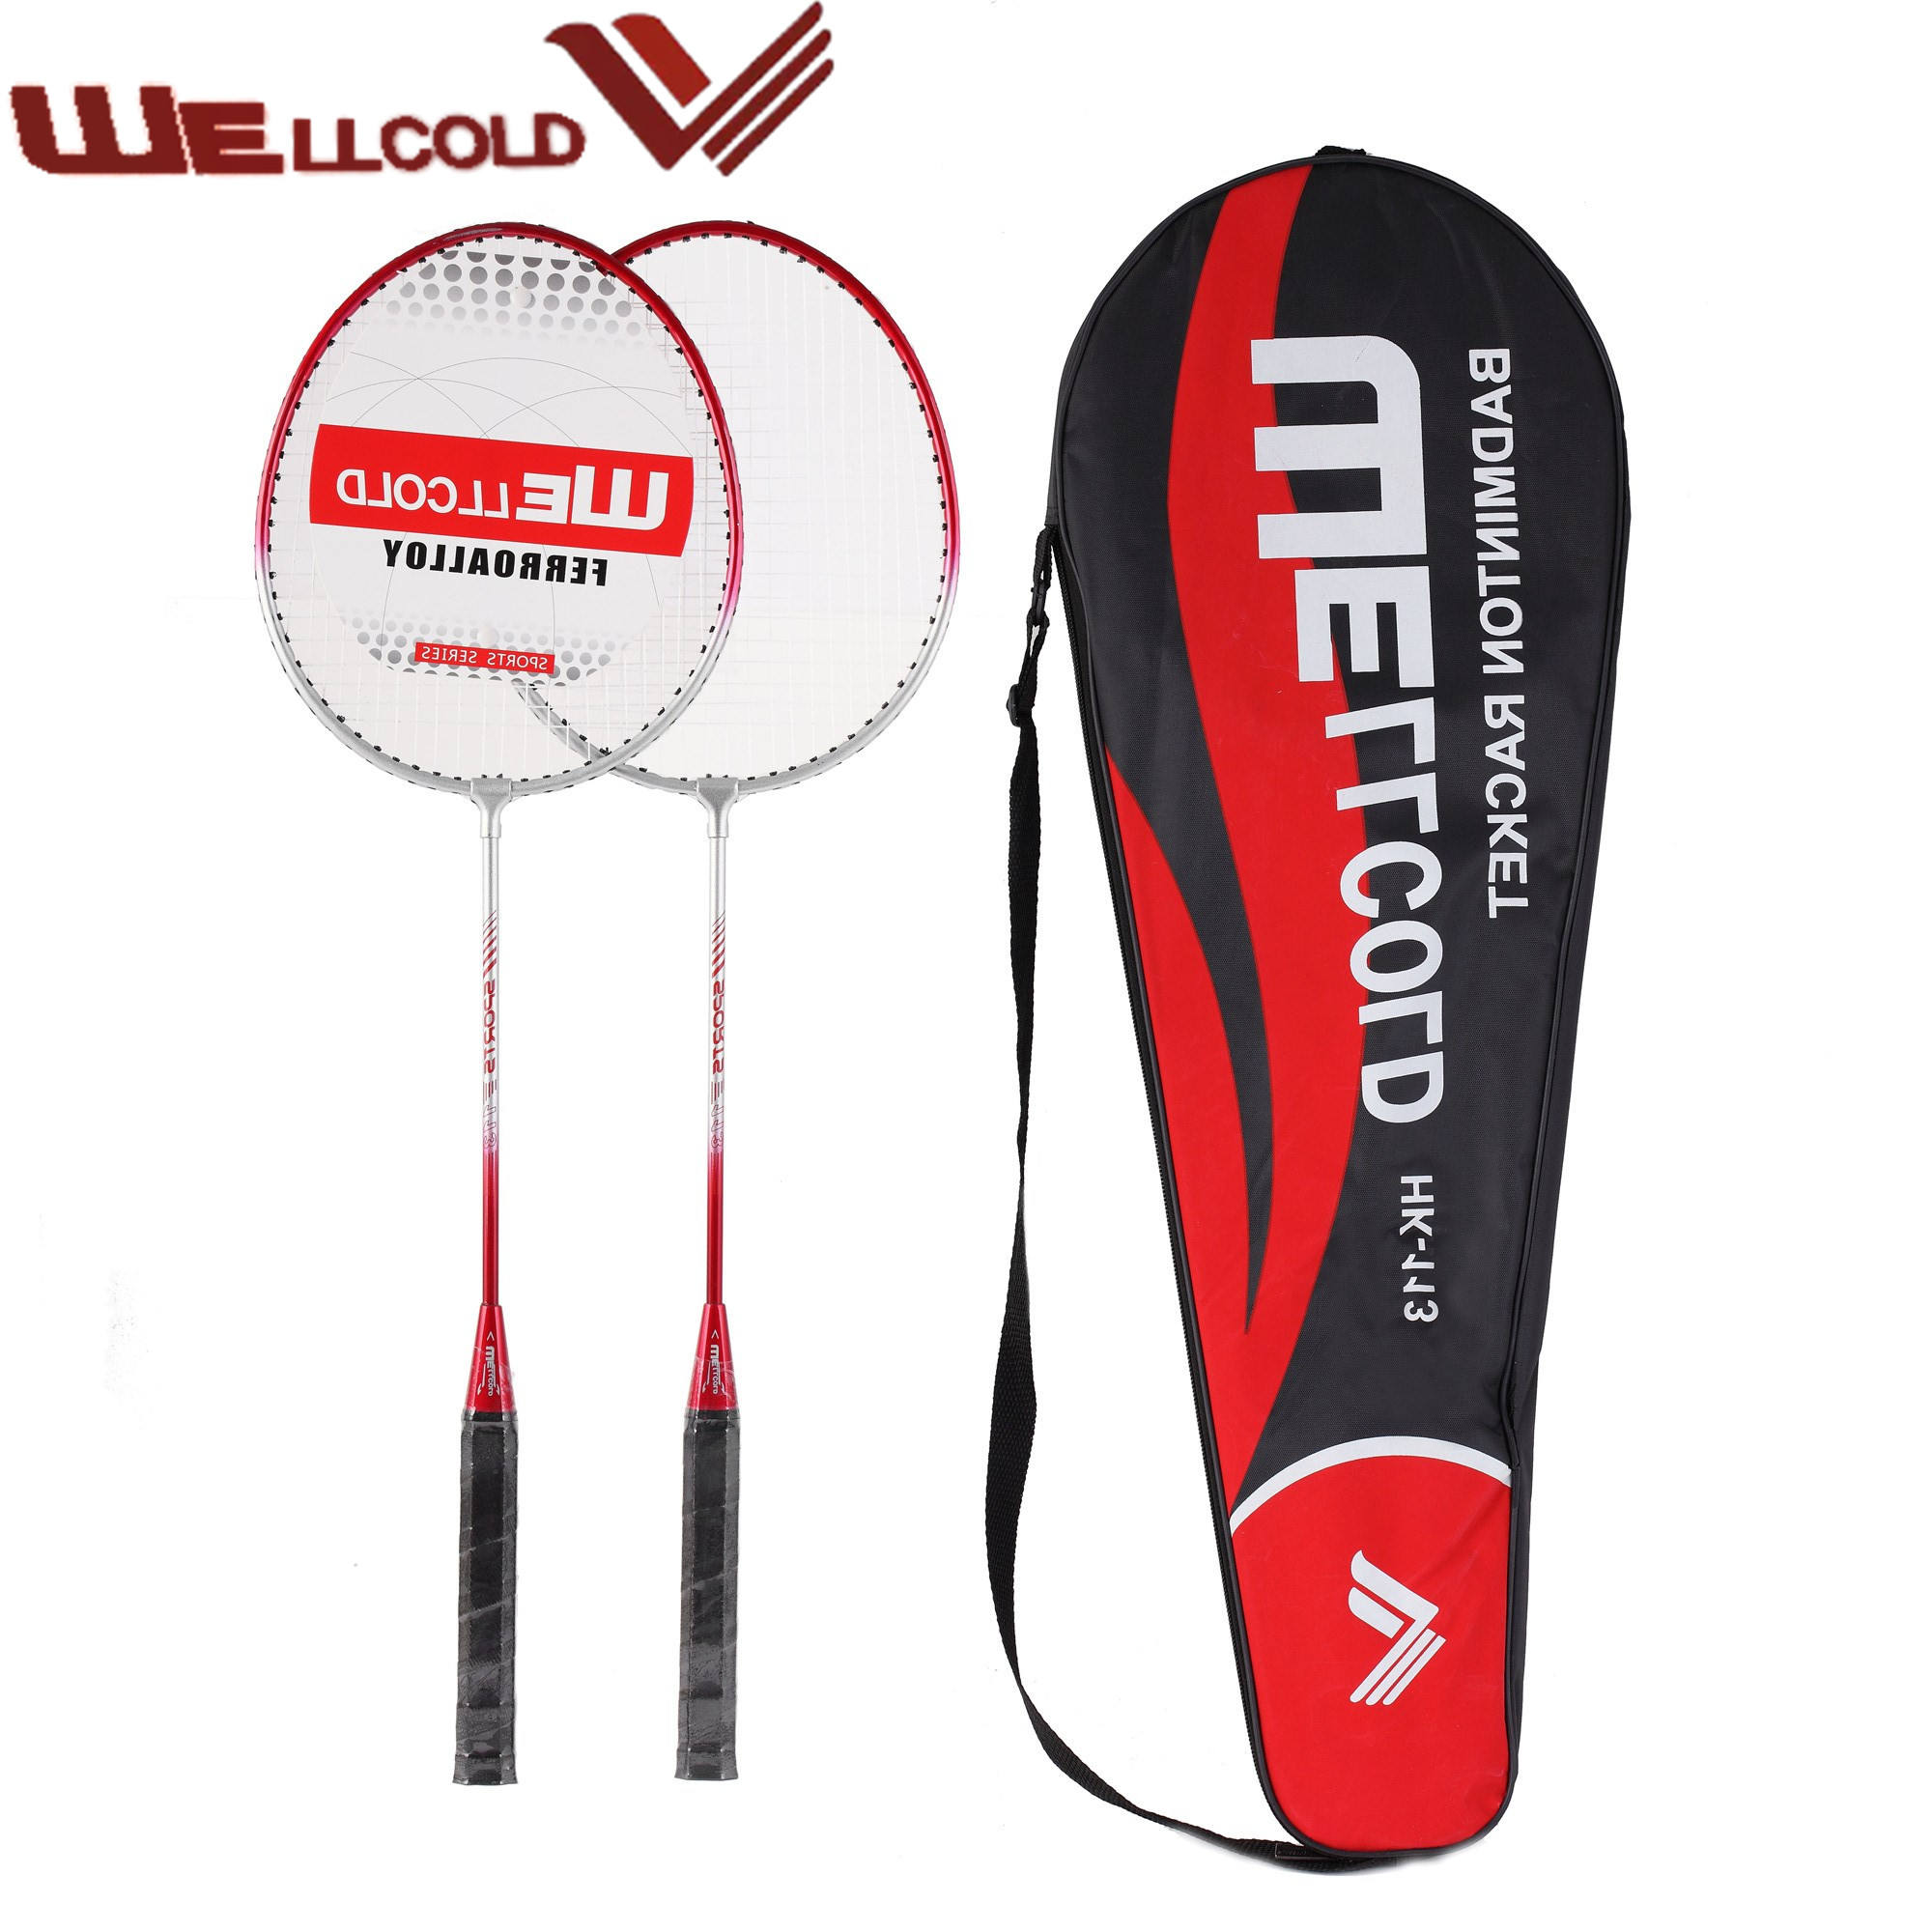 Wellcold low price lightweight iron alloy badminton rackets with PVC grip